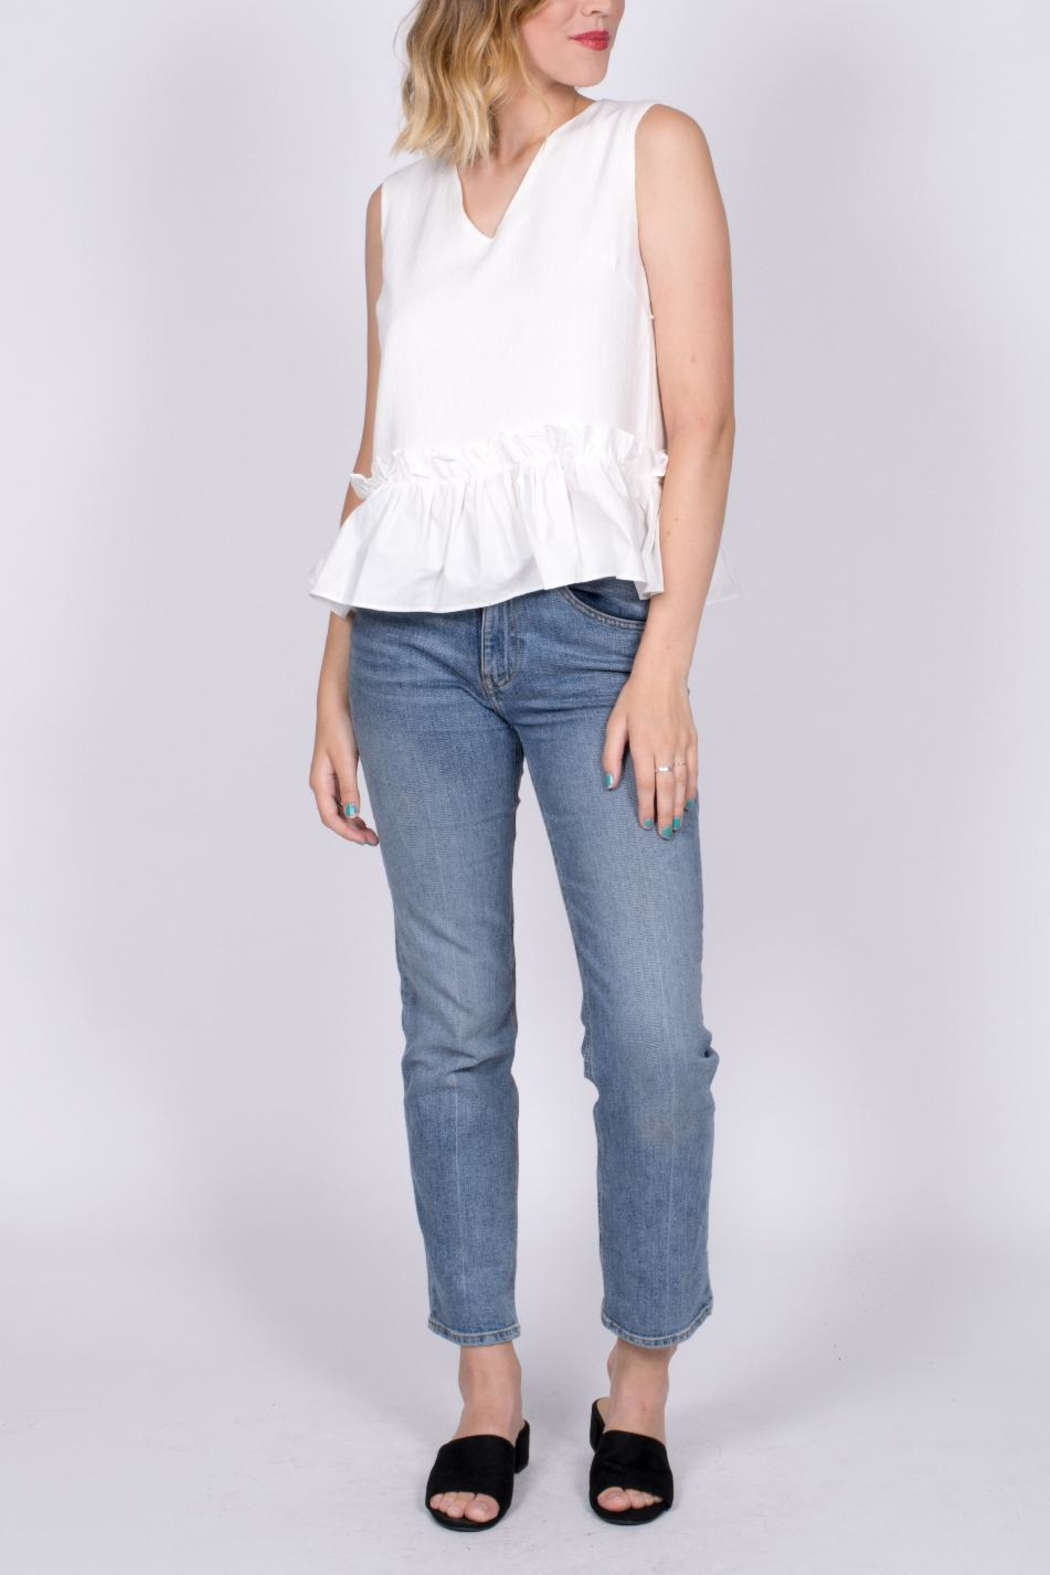 vanilla bay Ruffle Hem Top - Side Cropped Image